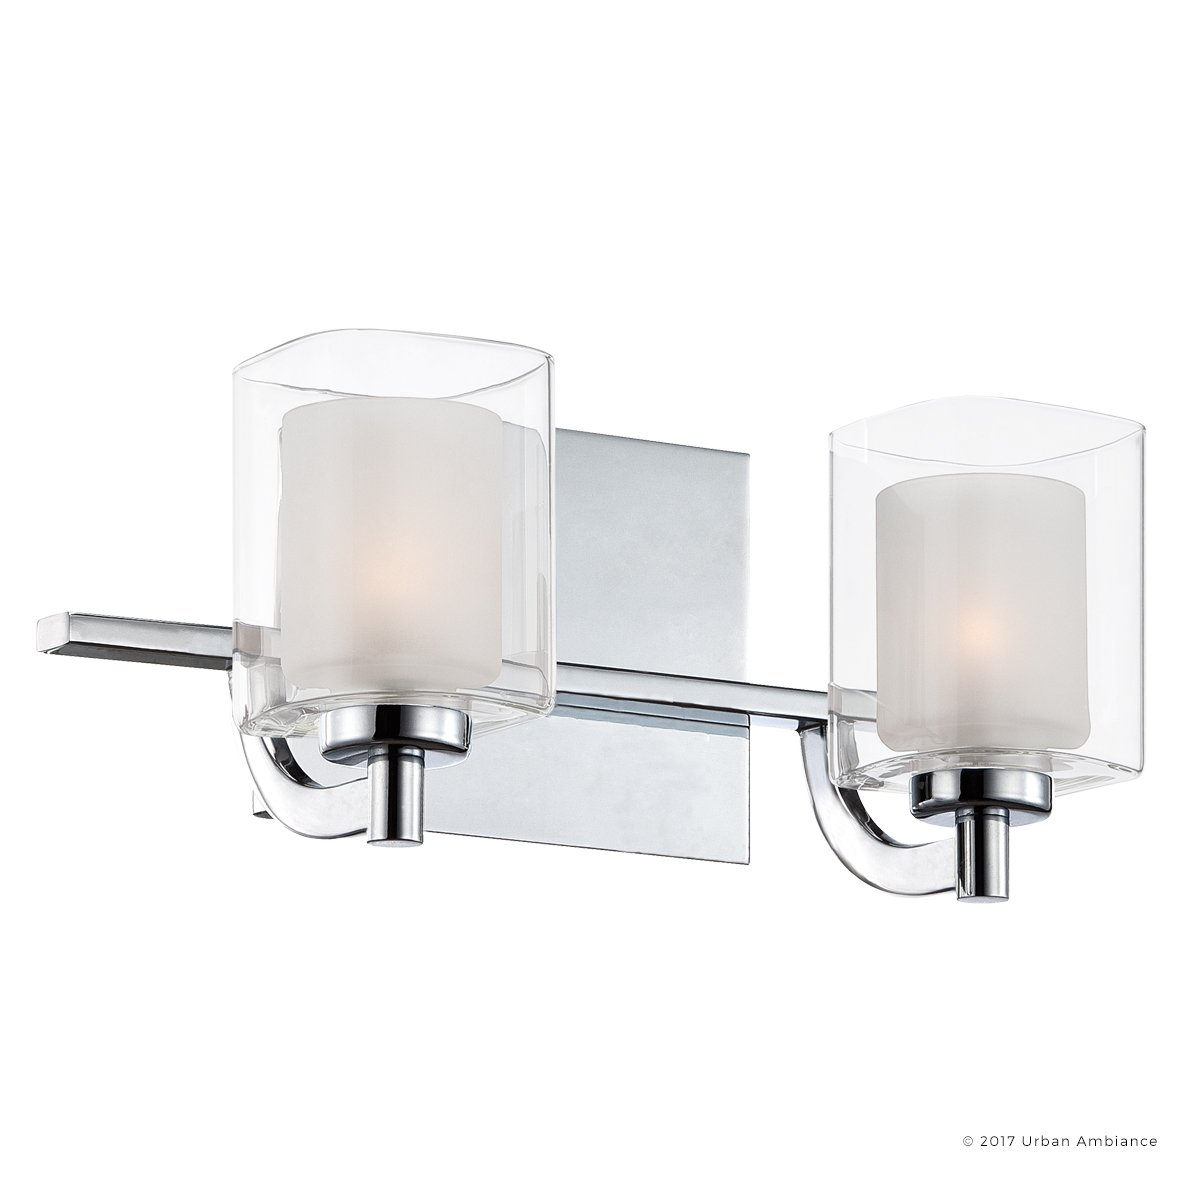 Luxury Modern Bathroom Vanity Light, Medium Size: 6''H x 13''W, with Posh Style Elements, Polished Chrome Finish and Sand Blasted Inner, Clear Outer Glass, G9 LED Technology, UQL2401 by Urban Ambiance